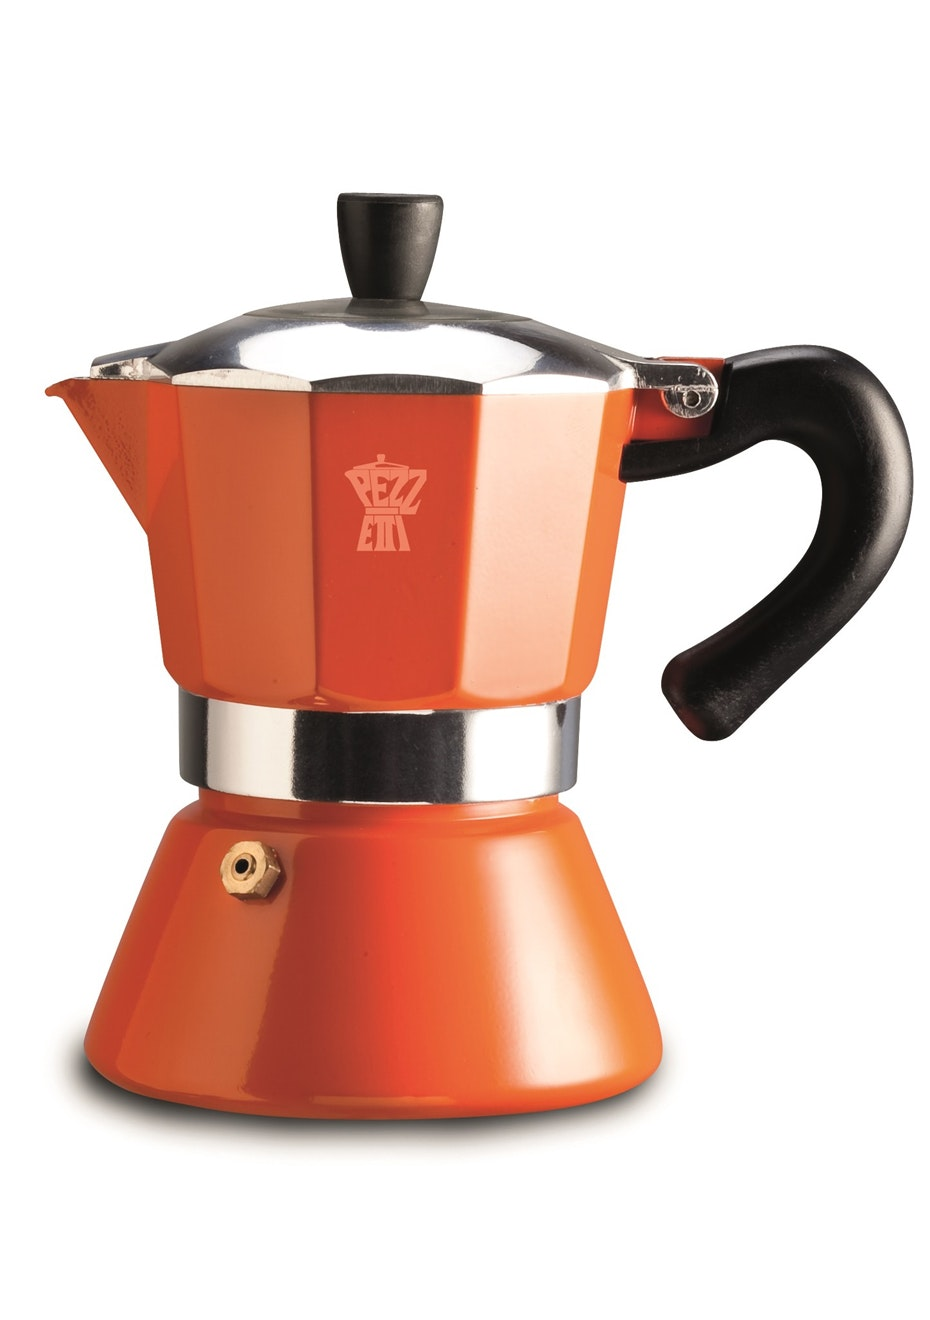 Pezzetti Bellexpress Orange Induction Coffee Maker 3Cup